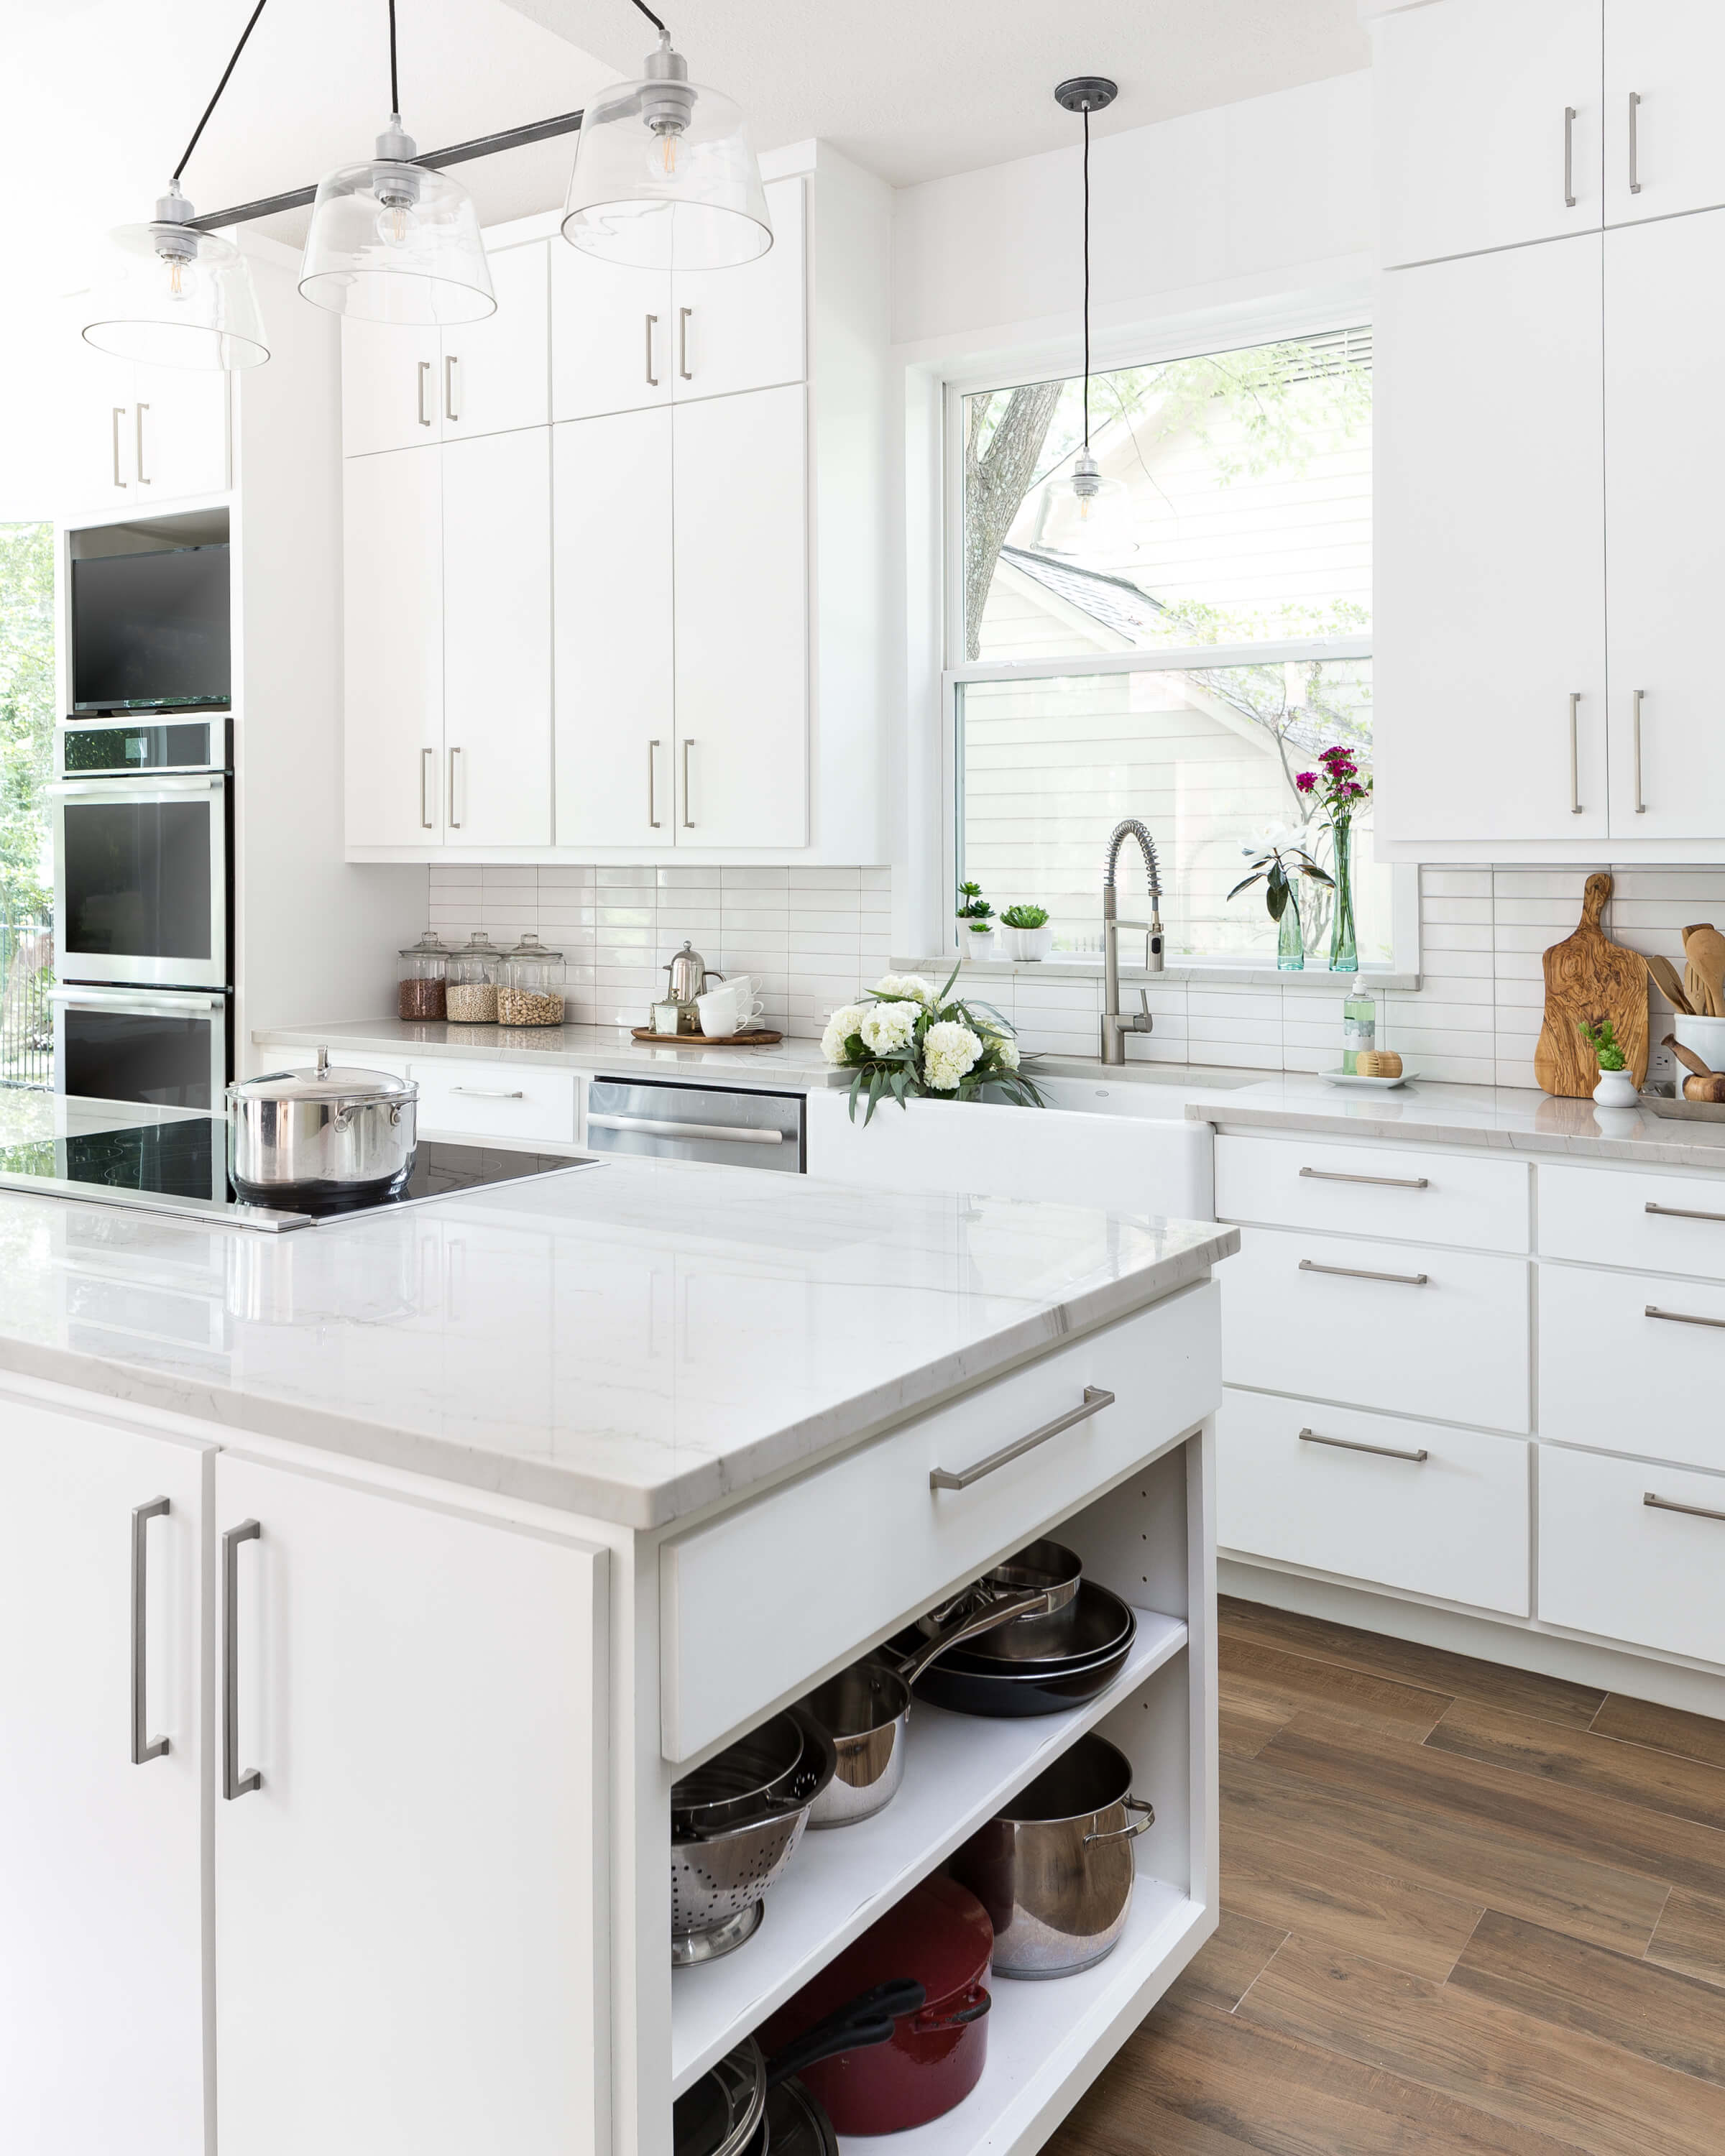 AFTER - The desired open shelving for pots and pans was tucked in at the end of the island to hide the clutter and make these easily accessible for the homeowner. The new taller window and farmhouse sink are nice additions. Carla Aston, Designer | Colleen Scott, Photographer #whitekitchen #kitchenideas